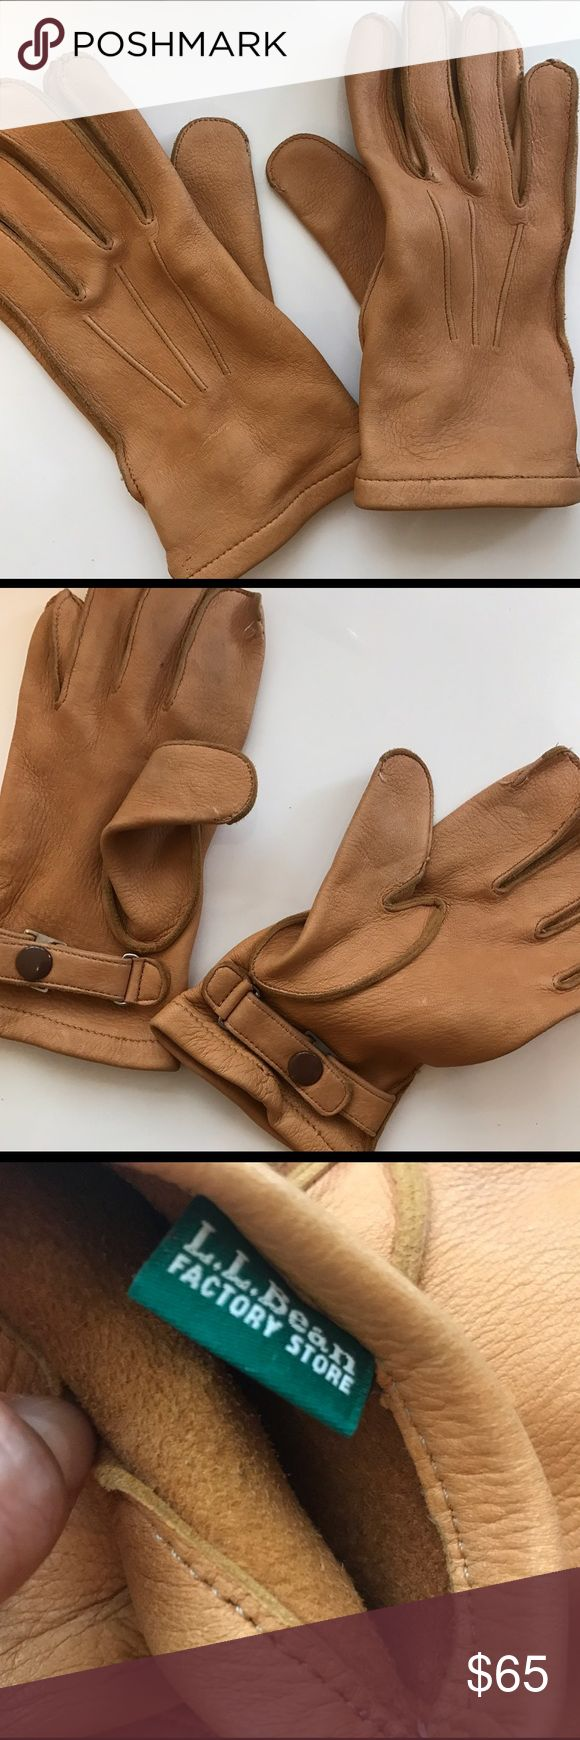 L.L.Bean deerskin leather camel gloves Gorgeous deer skin leather camel leather gloves. Feels like BUTTER! This says size small but they are men's gloves and could probably fit a liner. Gently used no signs of wear L.L. Bean Accessories Gloves